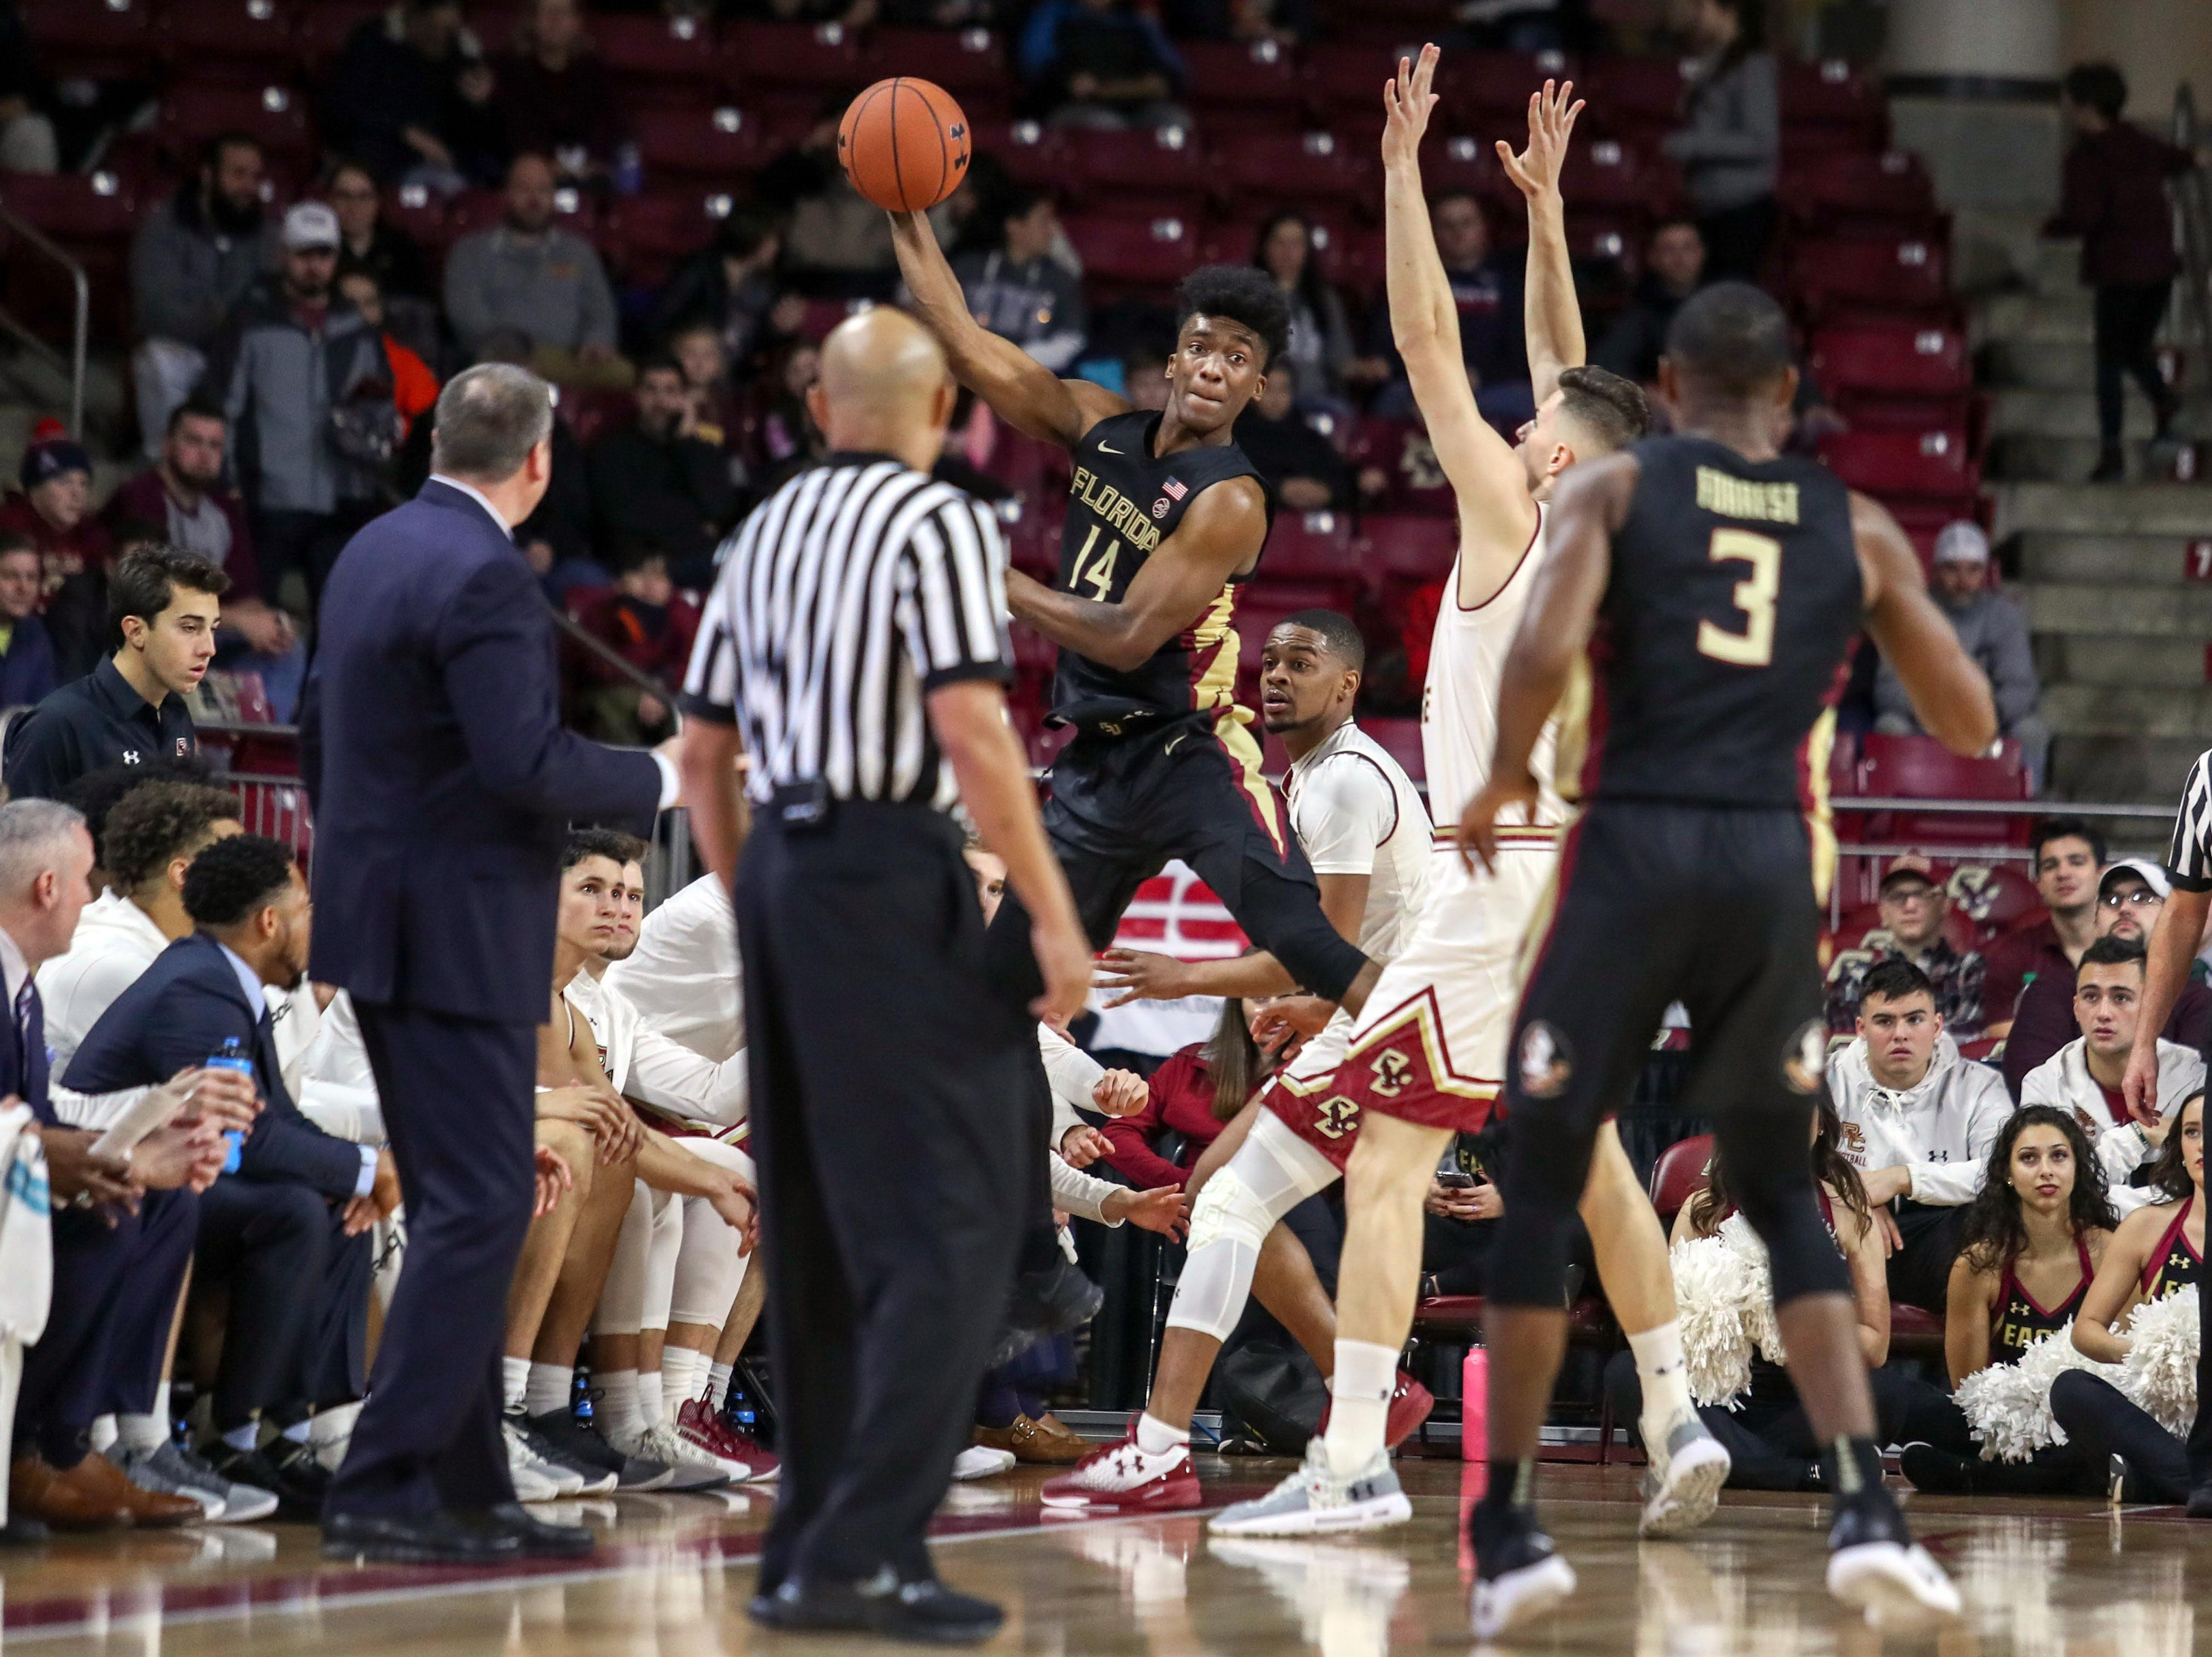 Jan 20, 2019; Chestnut Hill, MA, USA; Florida State Seminoles guard Terance Mann (14) saves the ball against the Boston College Eagles during the first half at Conte Forum. Mandatory Credit: Paul Rutherford-USA TODAY Sports